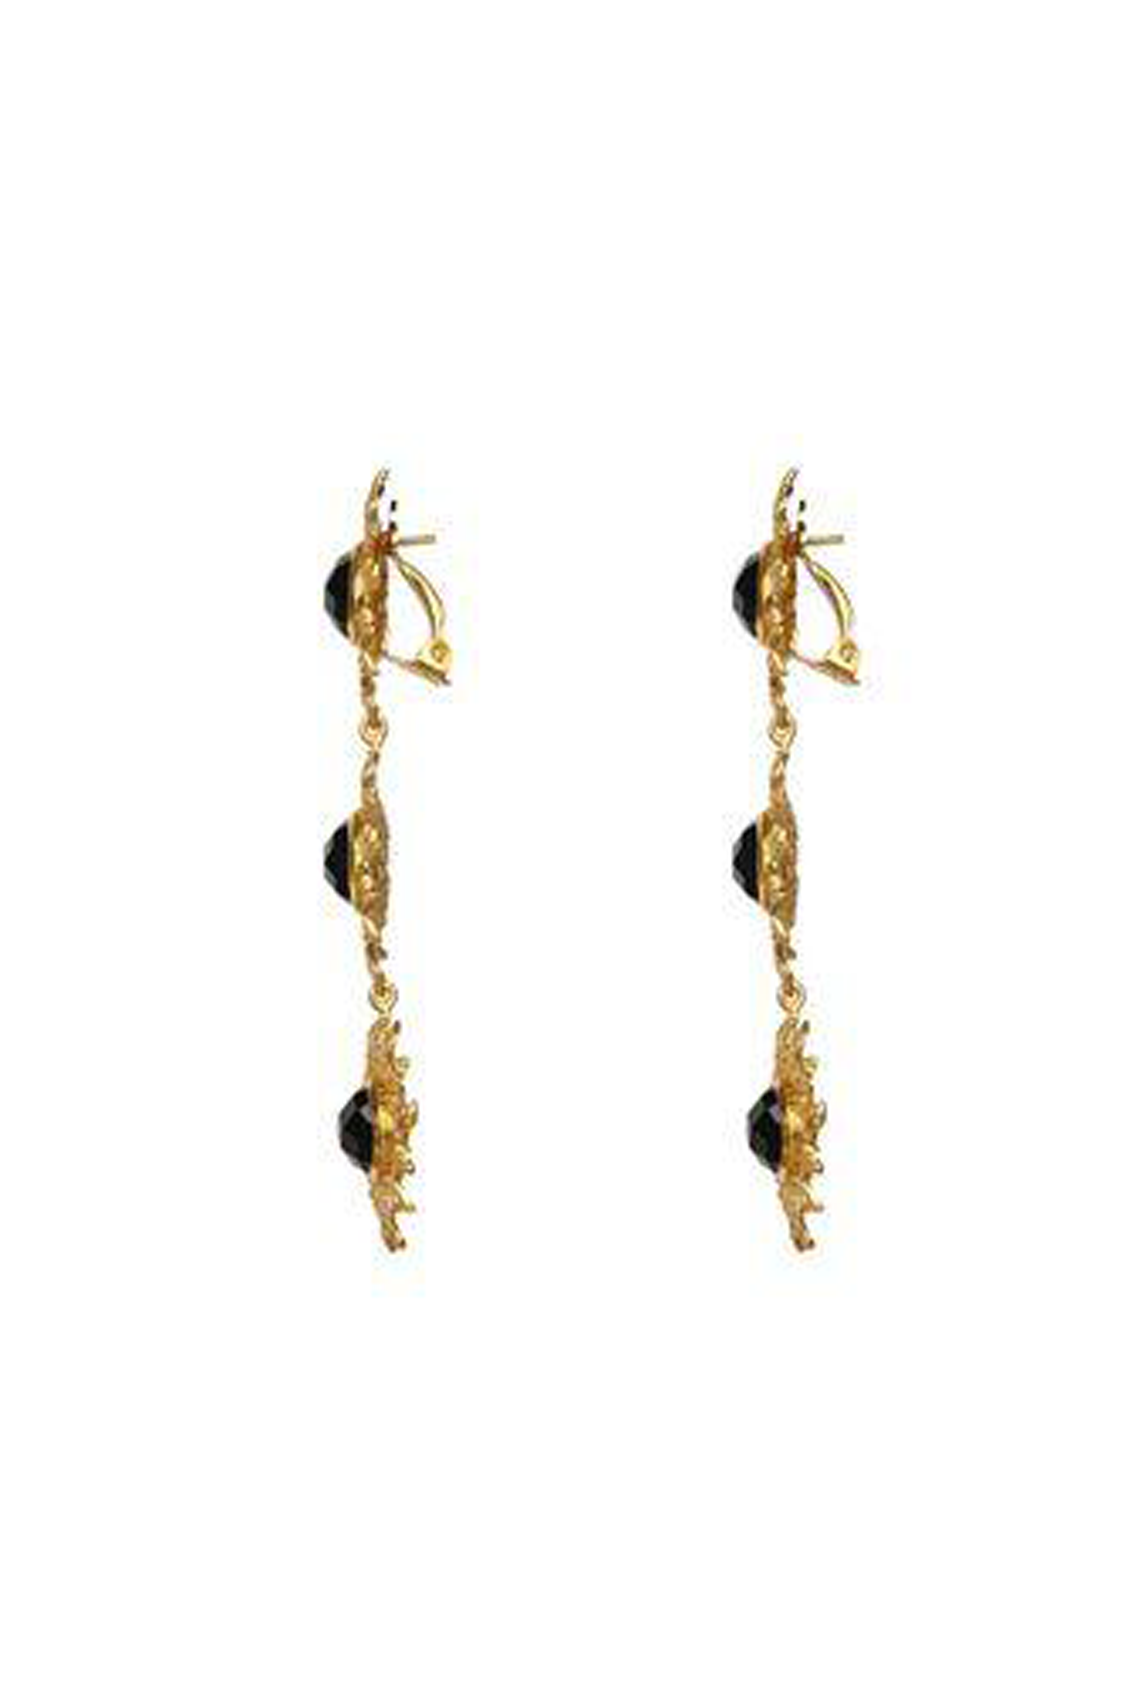 Valere Lei II Earrings - Black Onyx